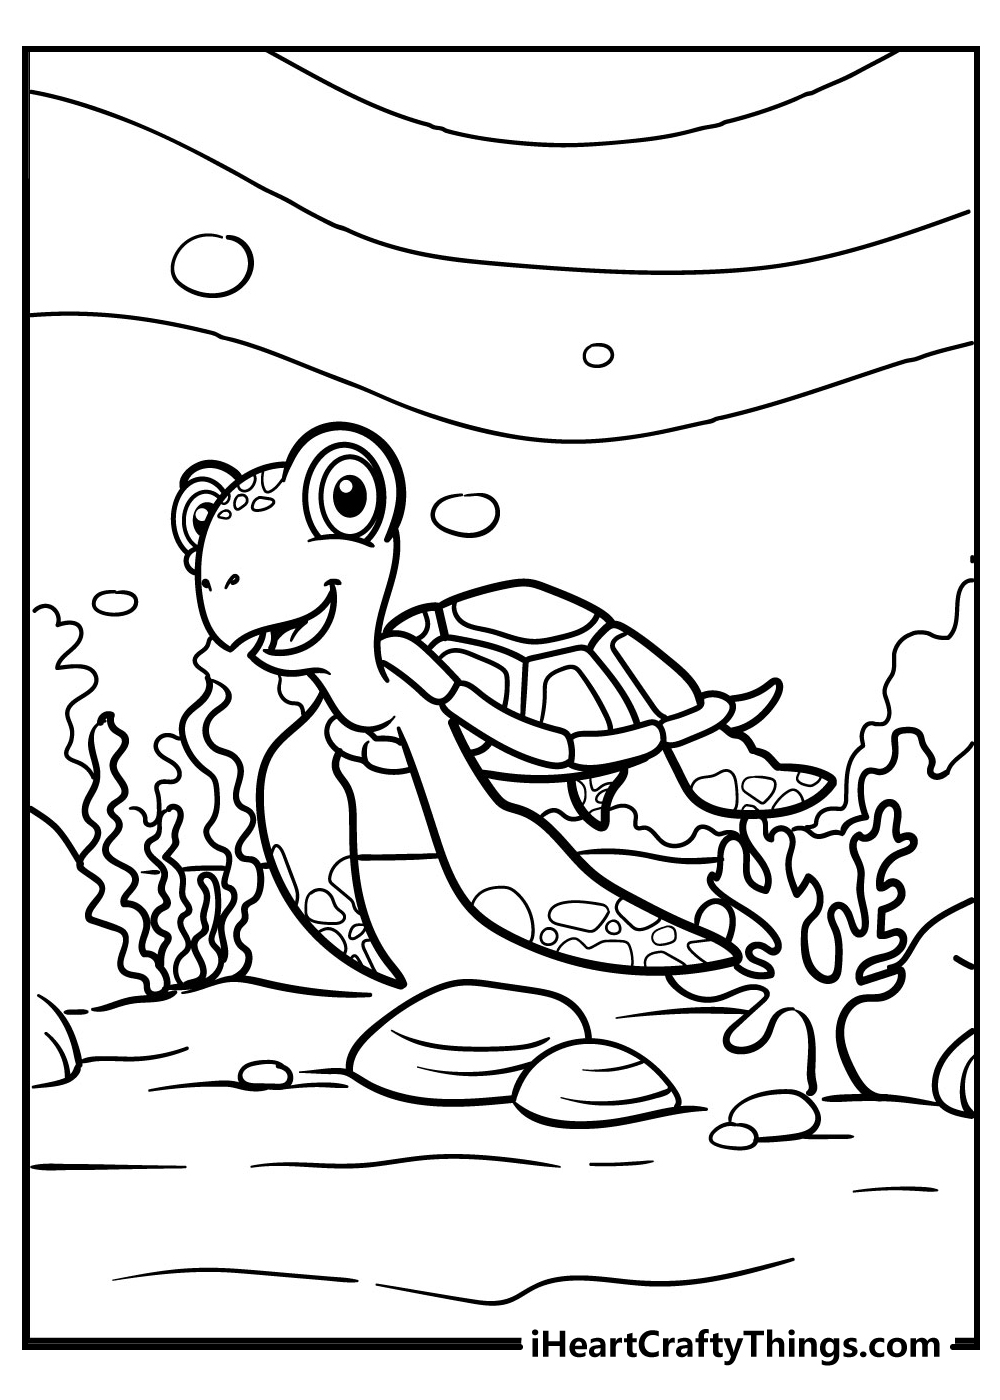 turtle coloring pages for adults free printable